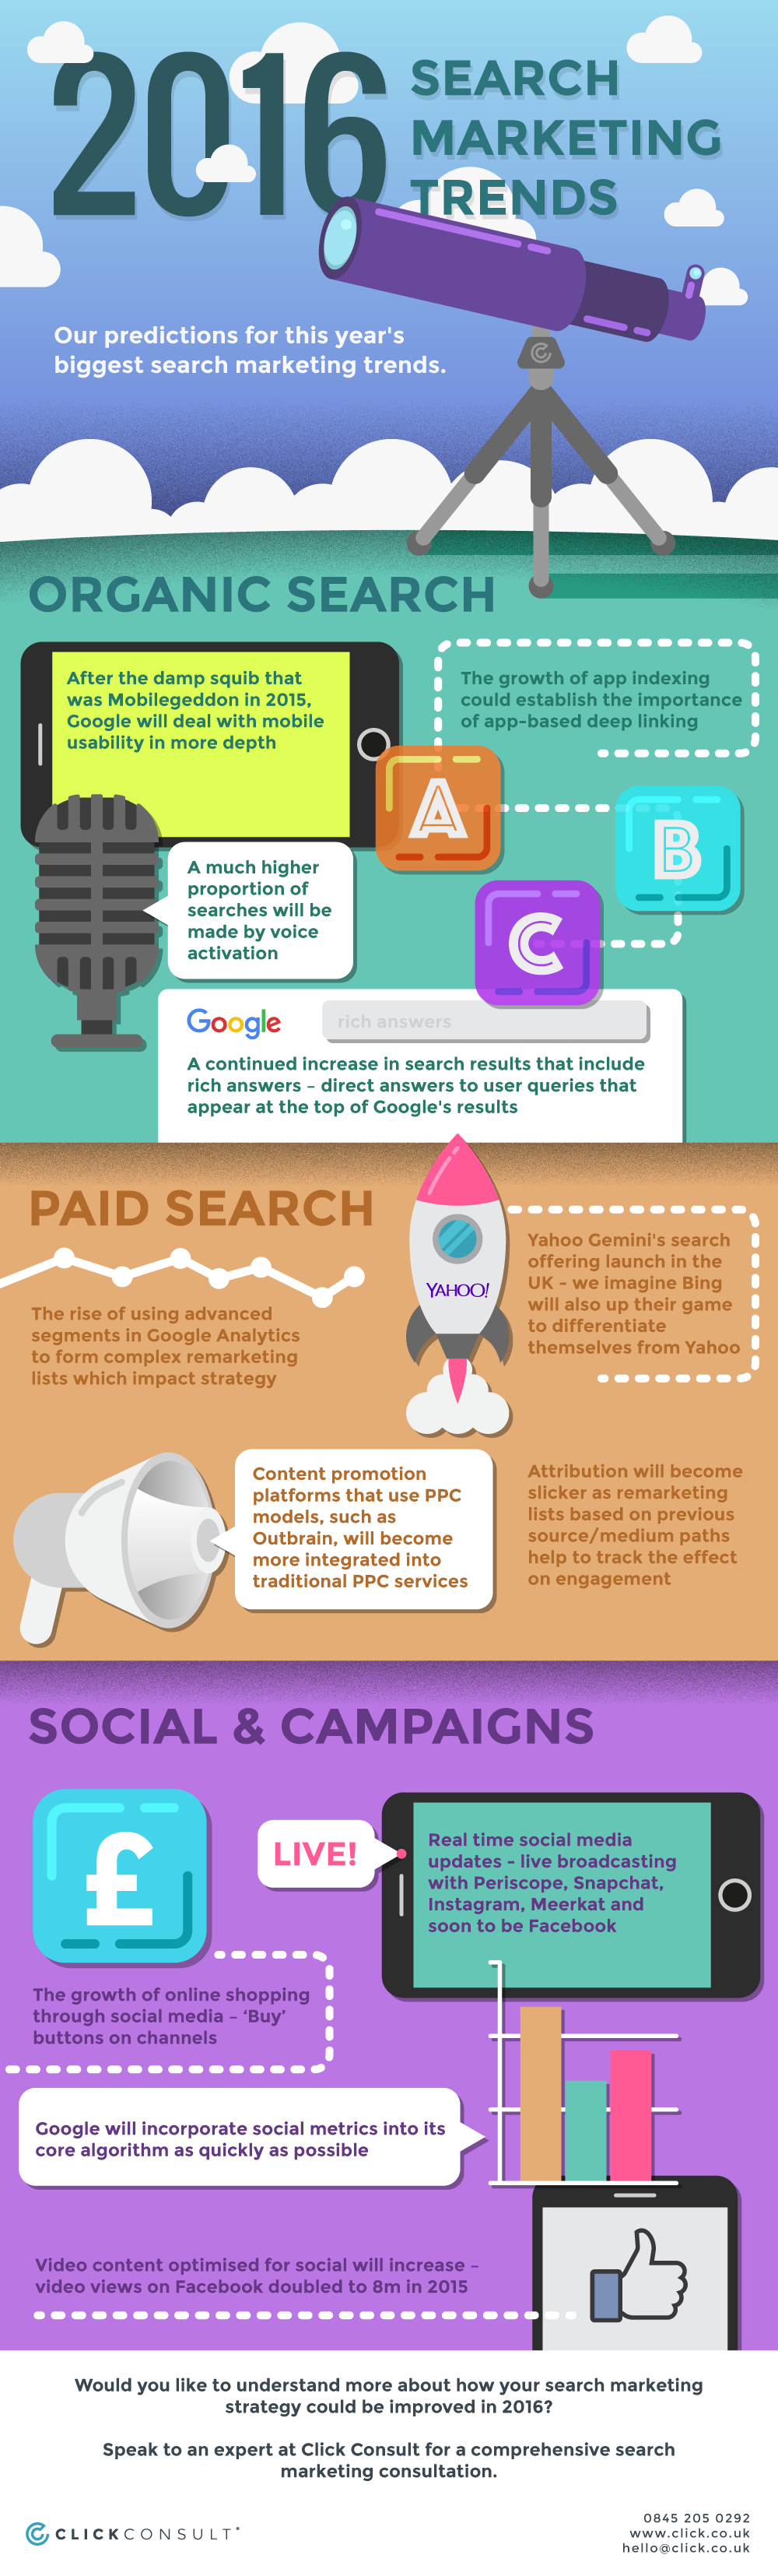 2016 search marketing trends infographic